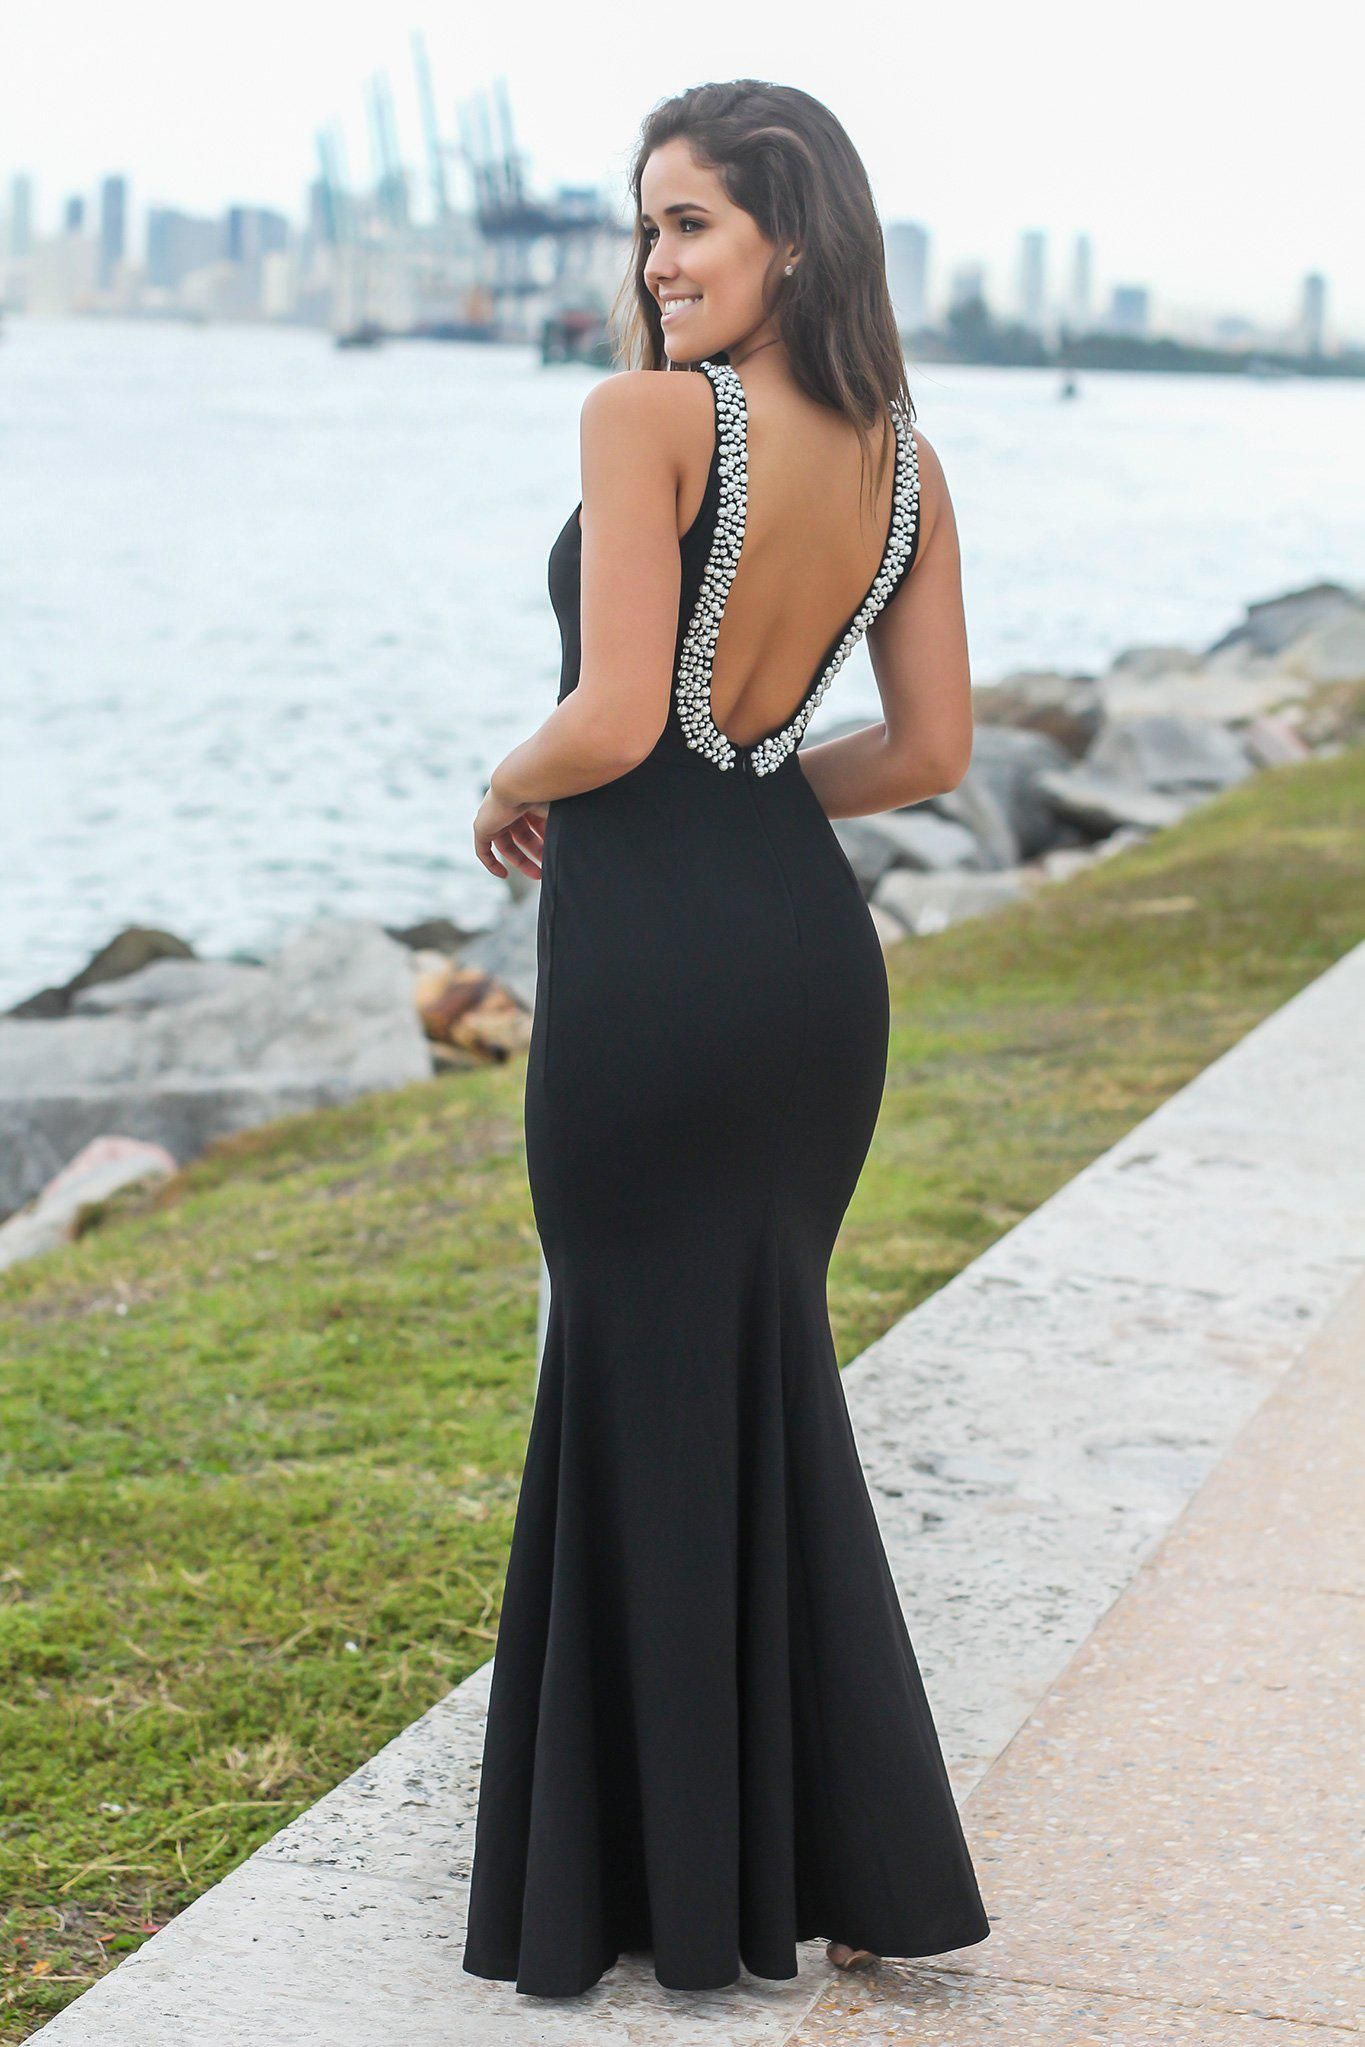 Black maxi dress with open back and pearl detail love it